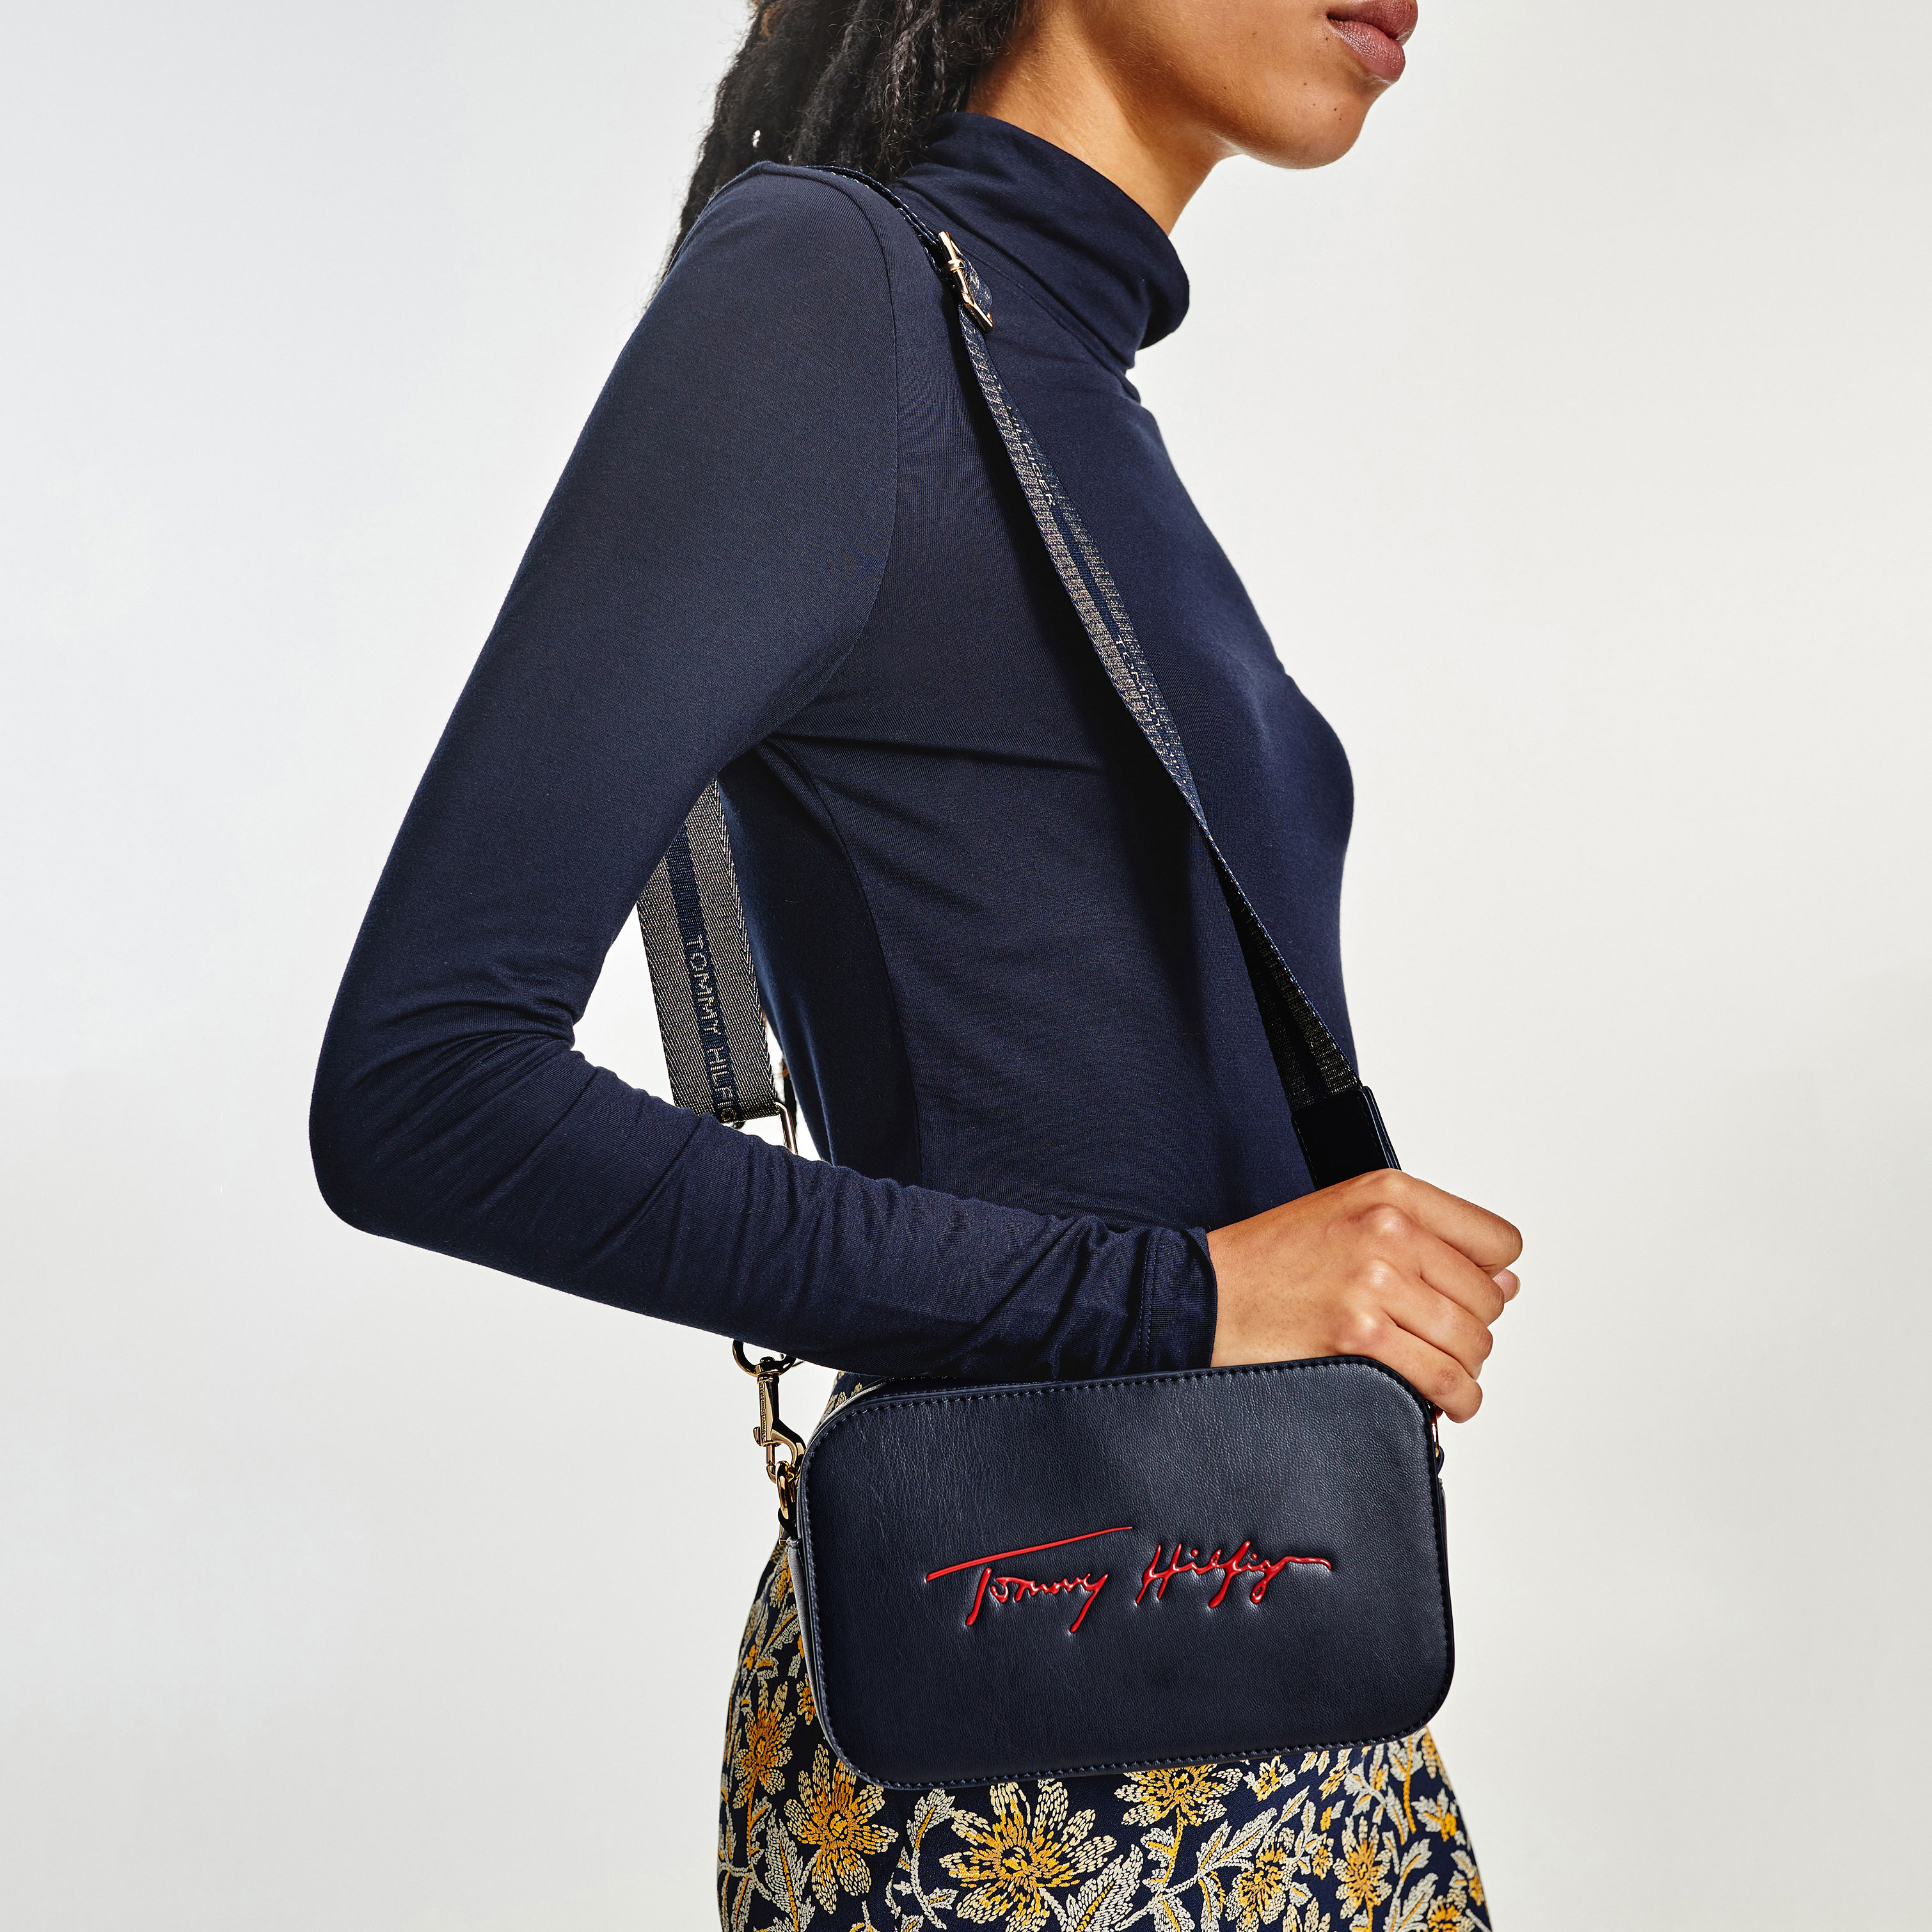 TOMMY HILFIGER Marroquinería Bandolera Iconic Tommy Camera Bag Sign AW0AW10464-DW5